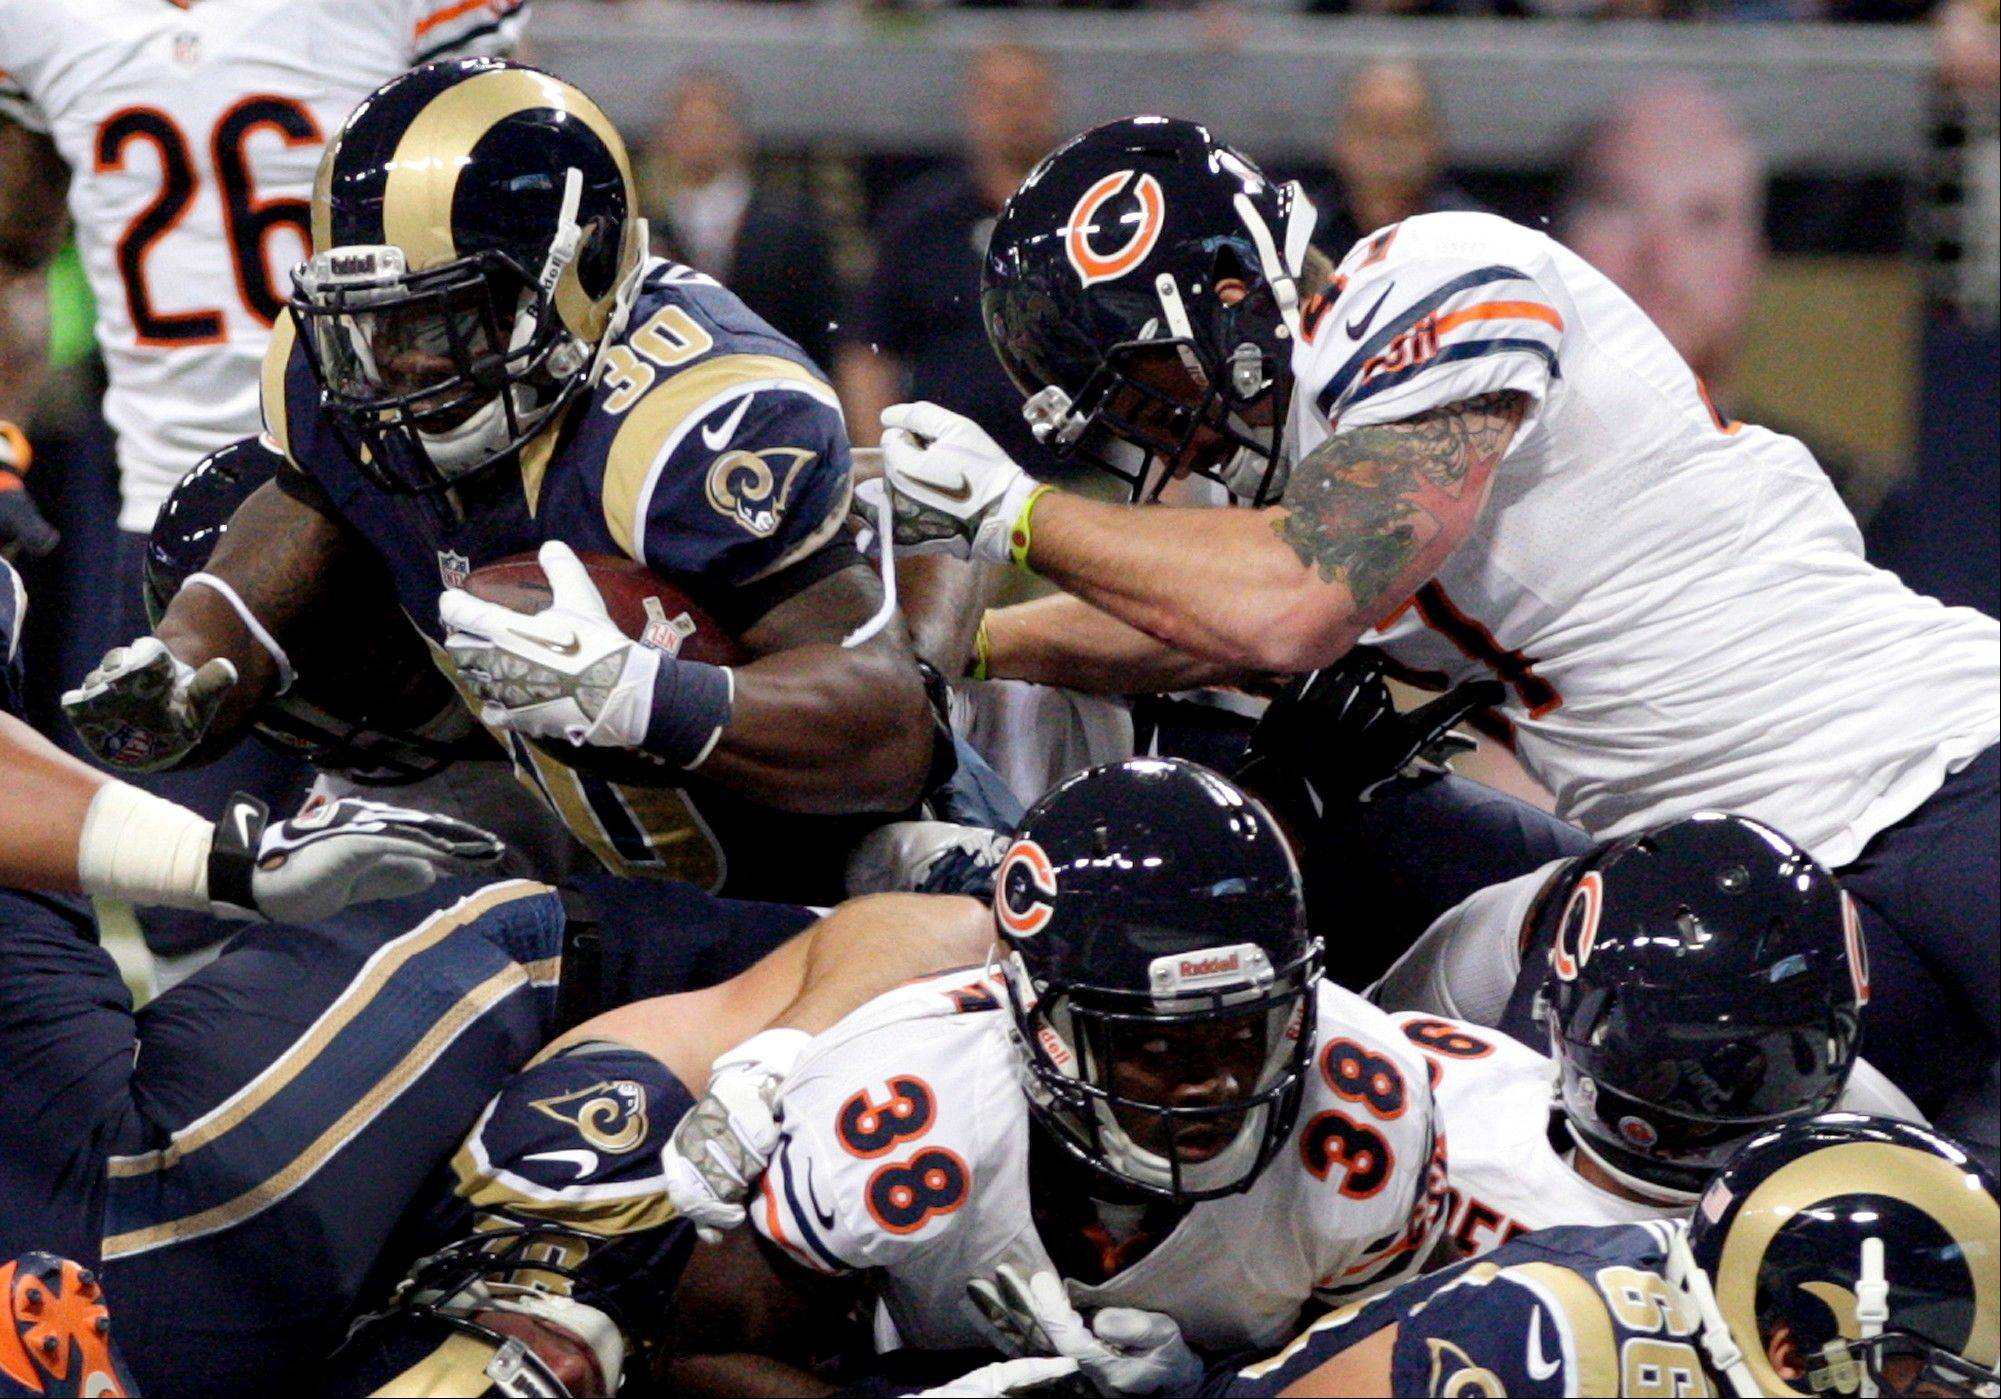 St. Louis Rams running back Zac Stacy (30) scores on a 1-yard run as Chicago Bears safety Chris Conte, top right, and cornerback Zack Bowman (38) defend during the first quarter.